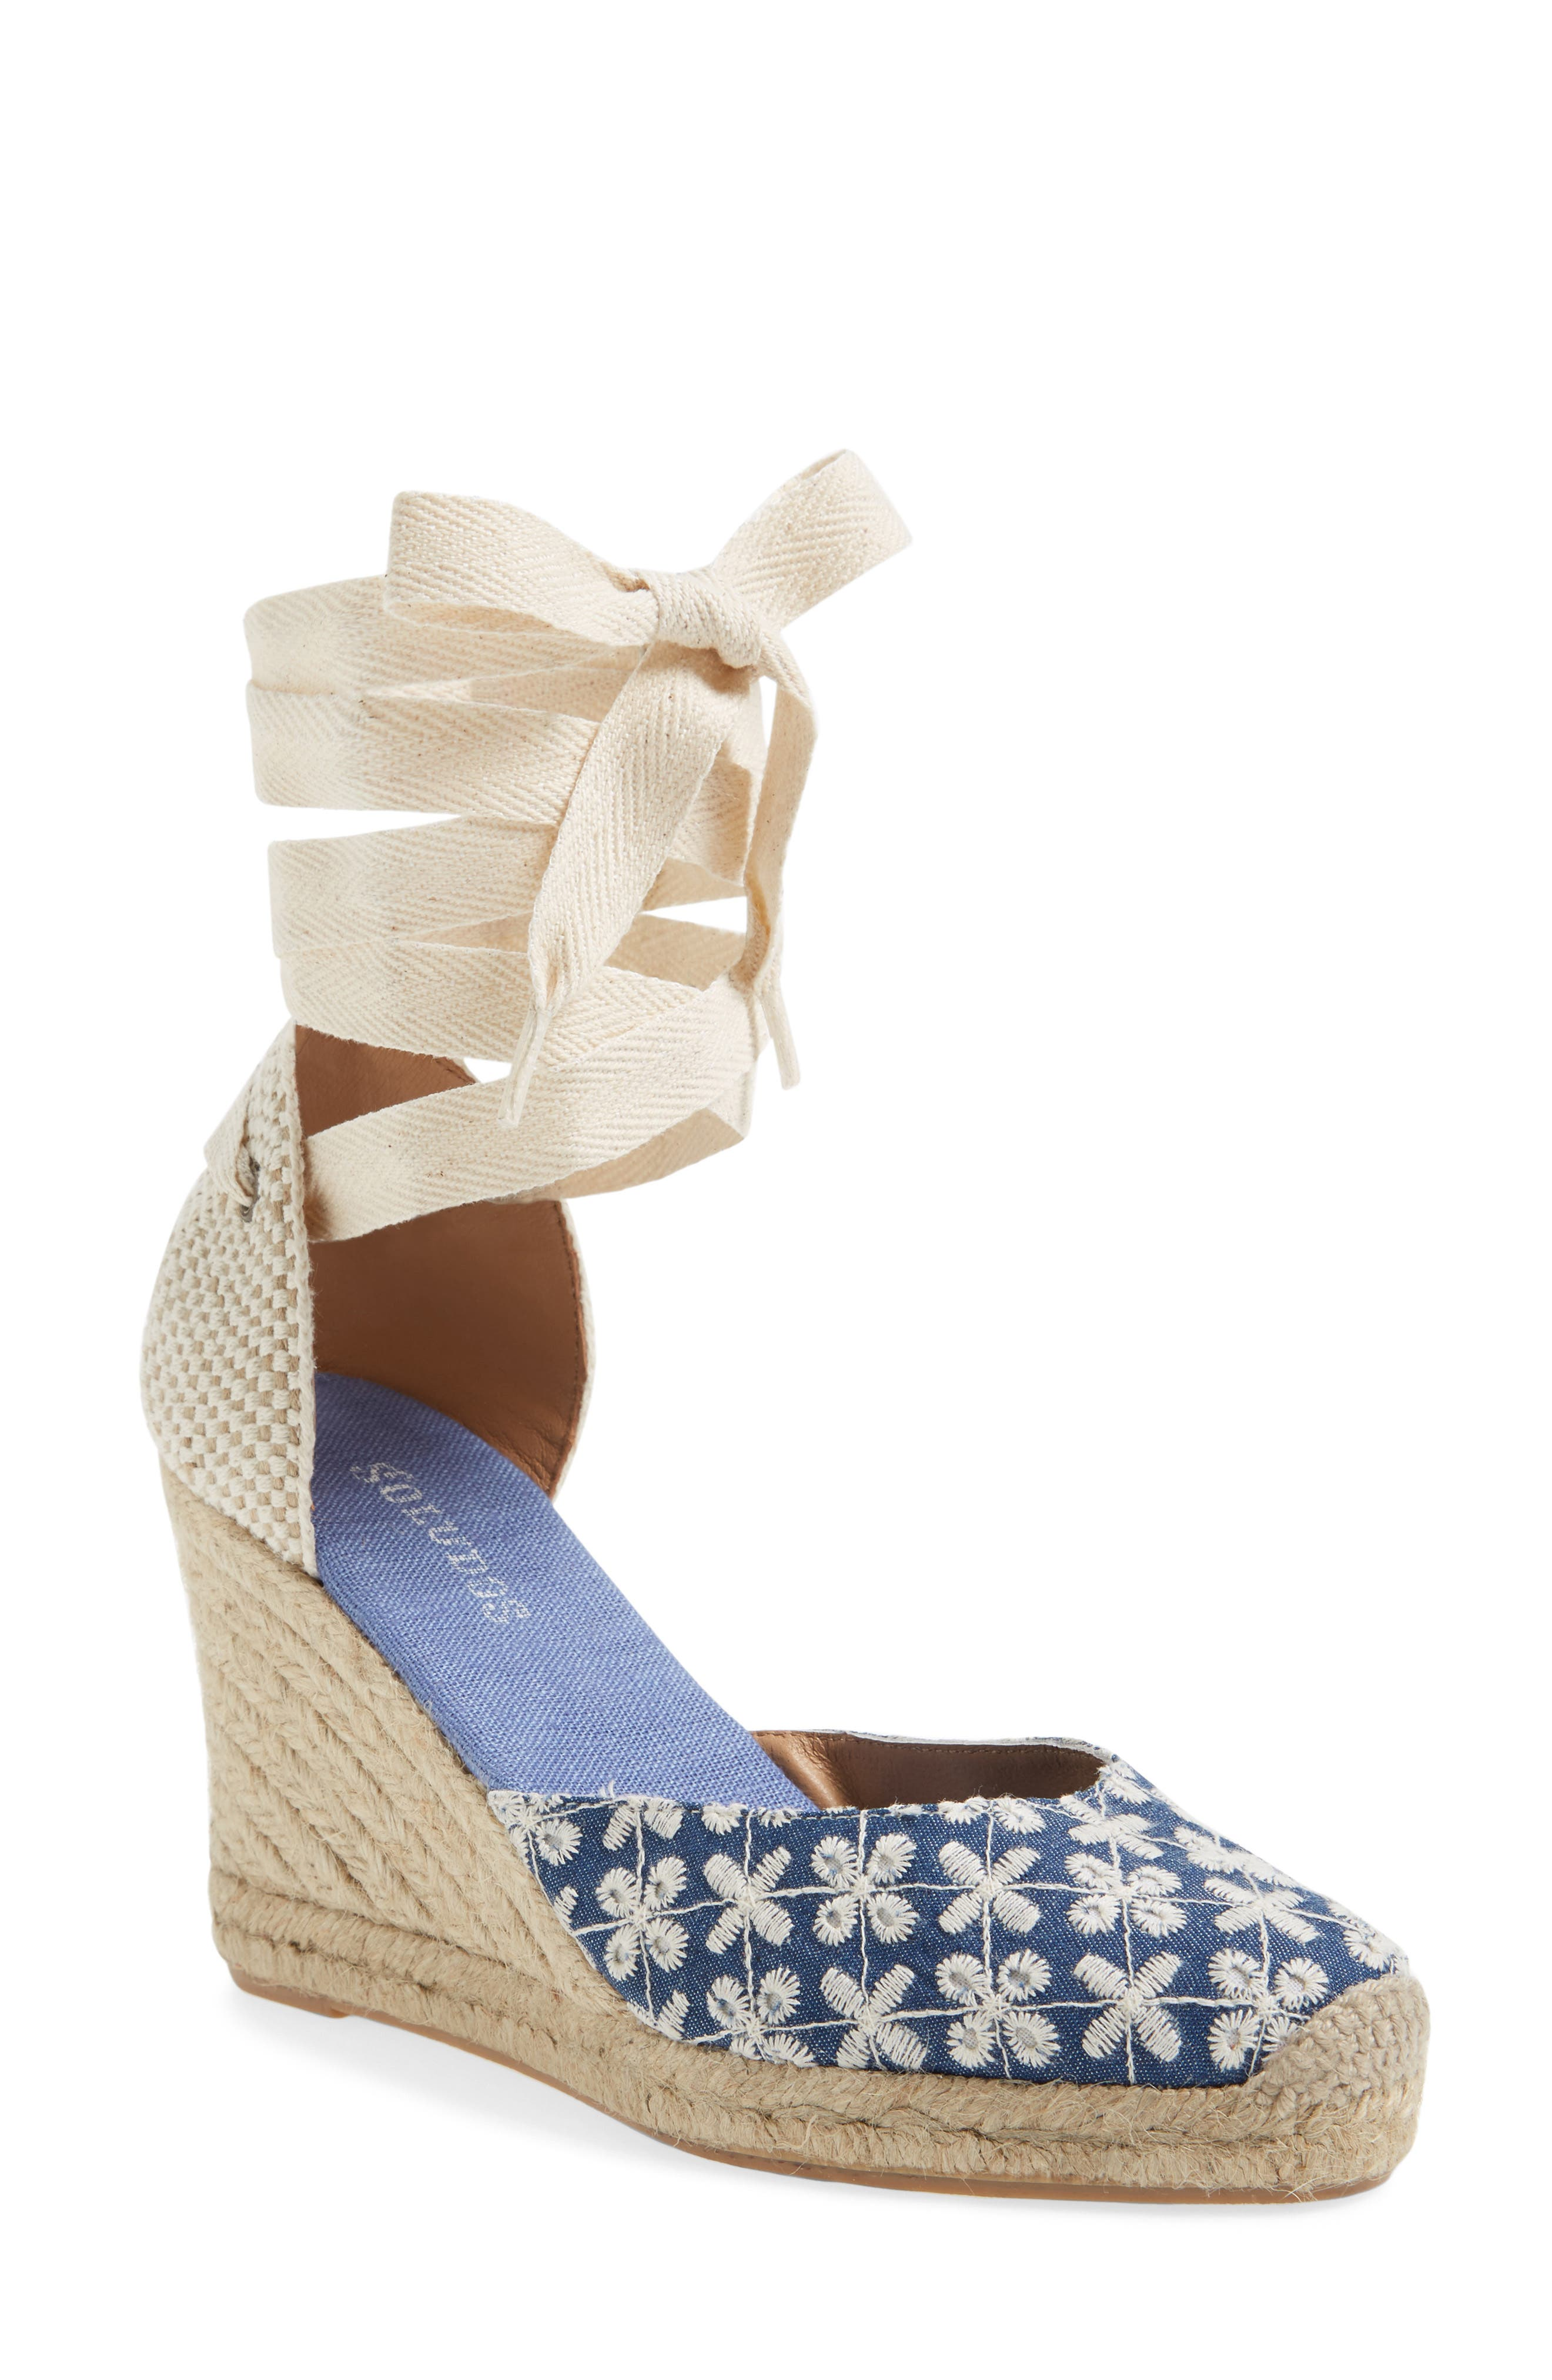 Alternate Image 1 Selected - Soludos Espadrille Wedge Sandal (Women)